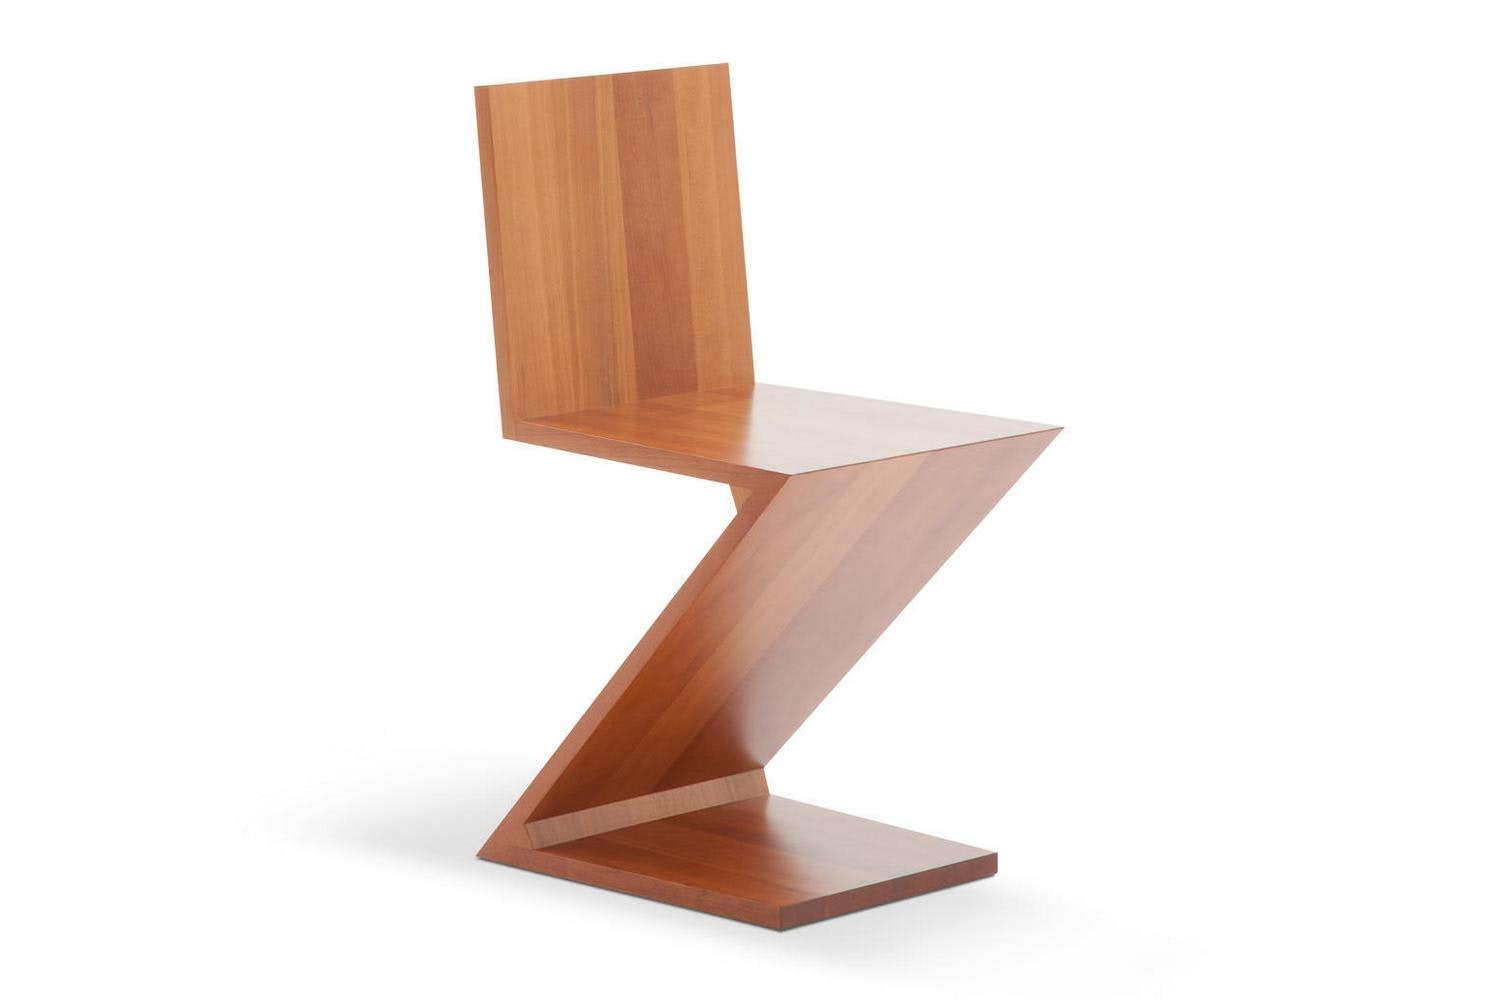 280 Zig Zag Chair by Gerrit Thomas Rietveld for Cassina